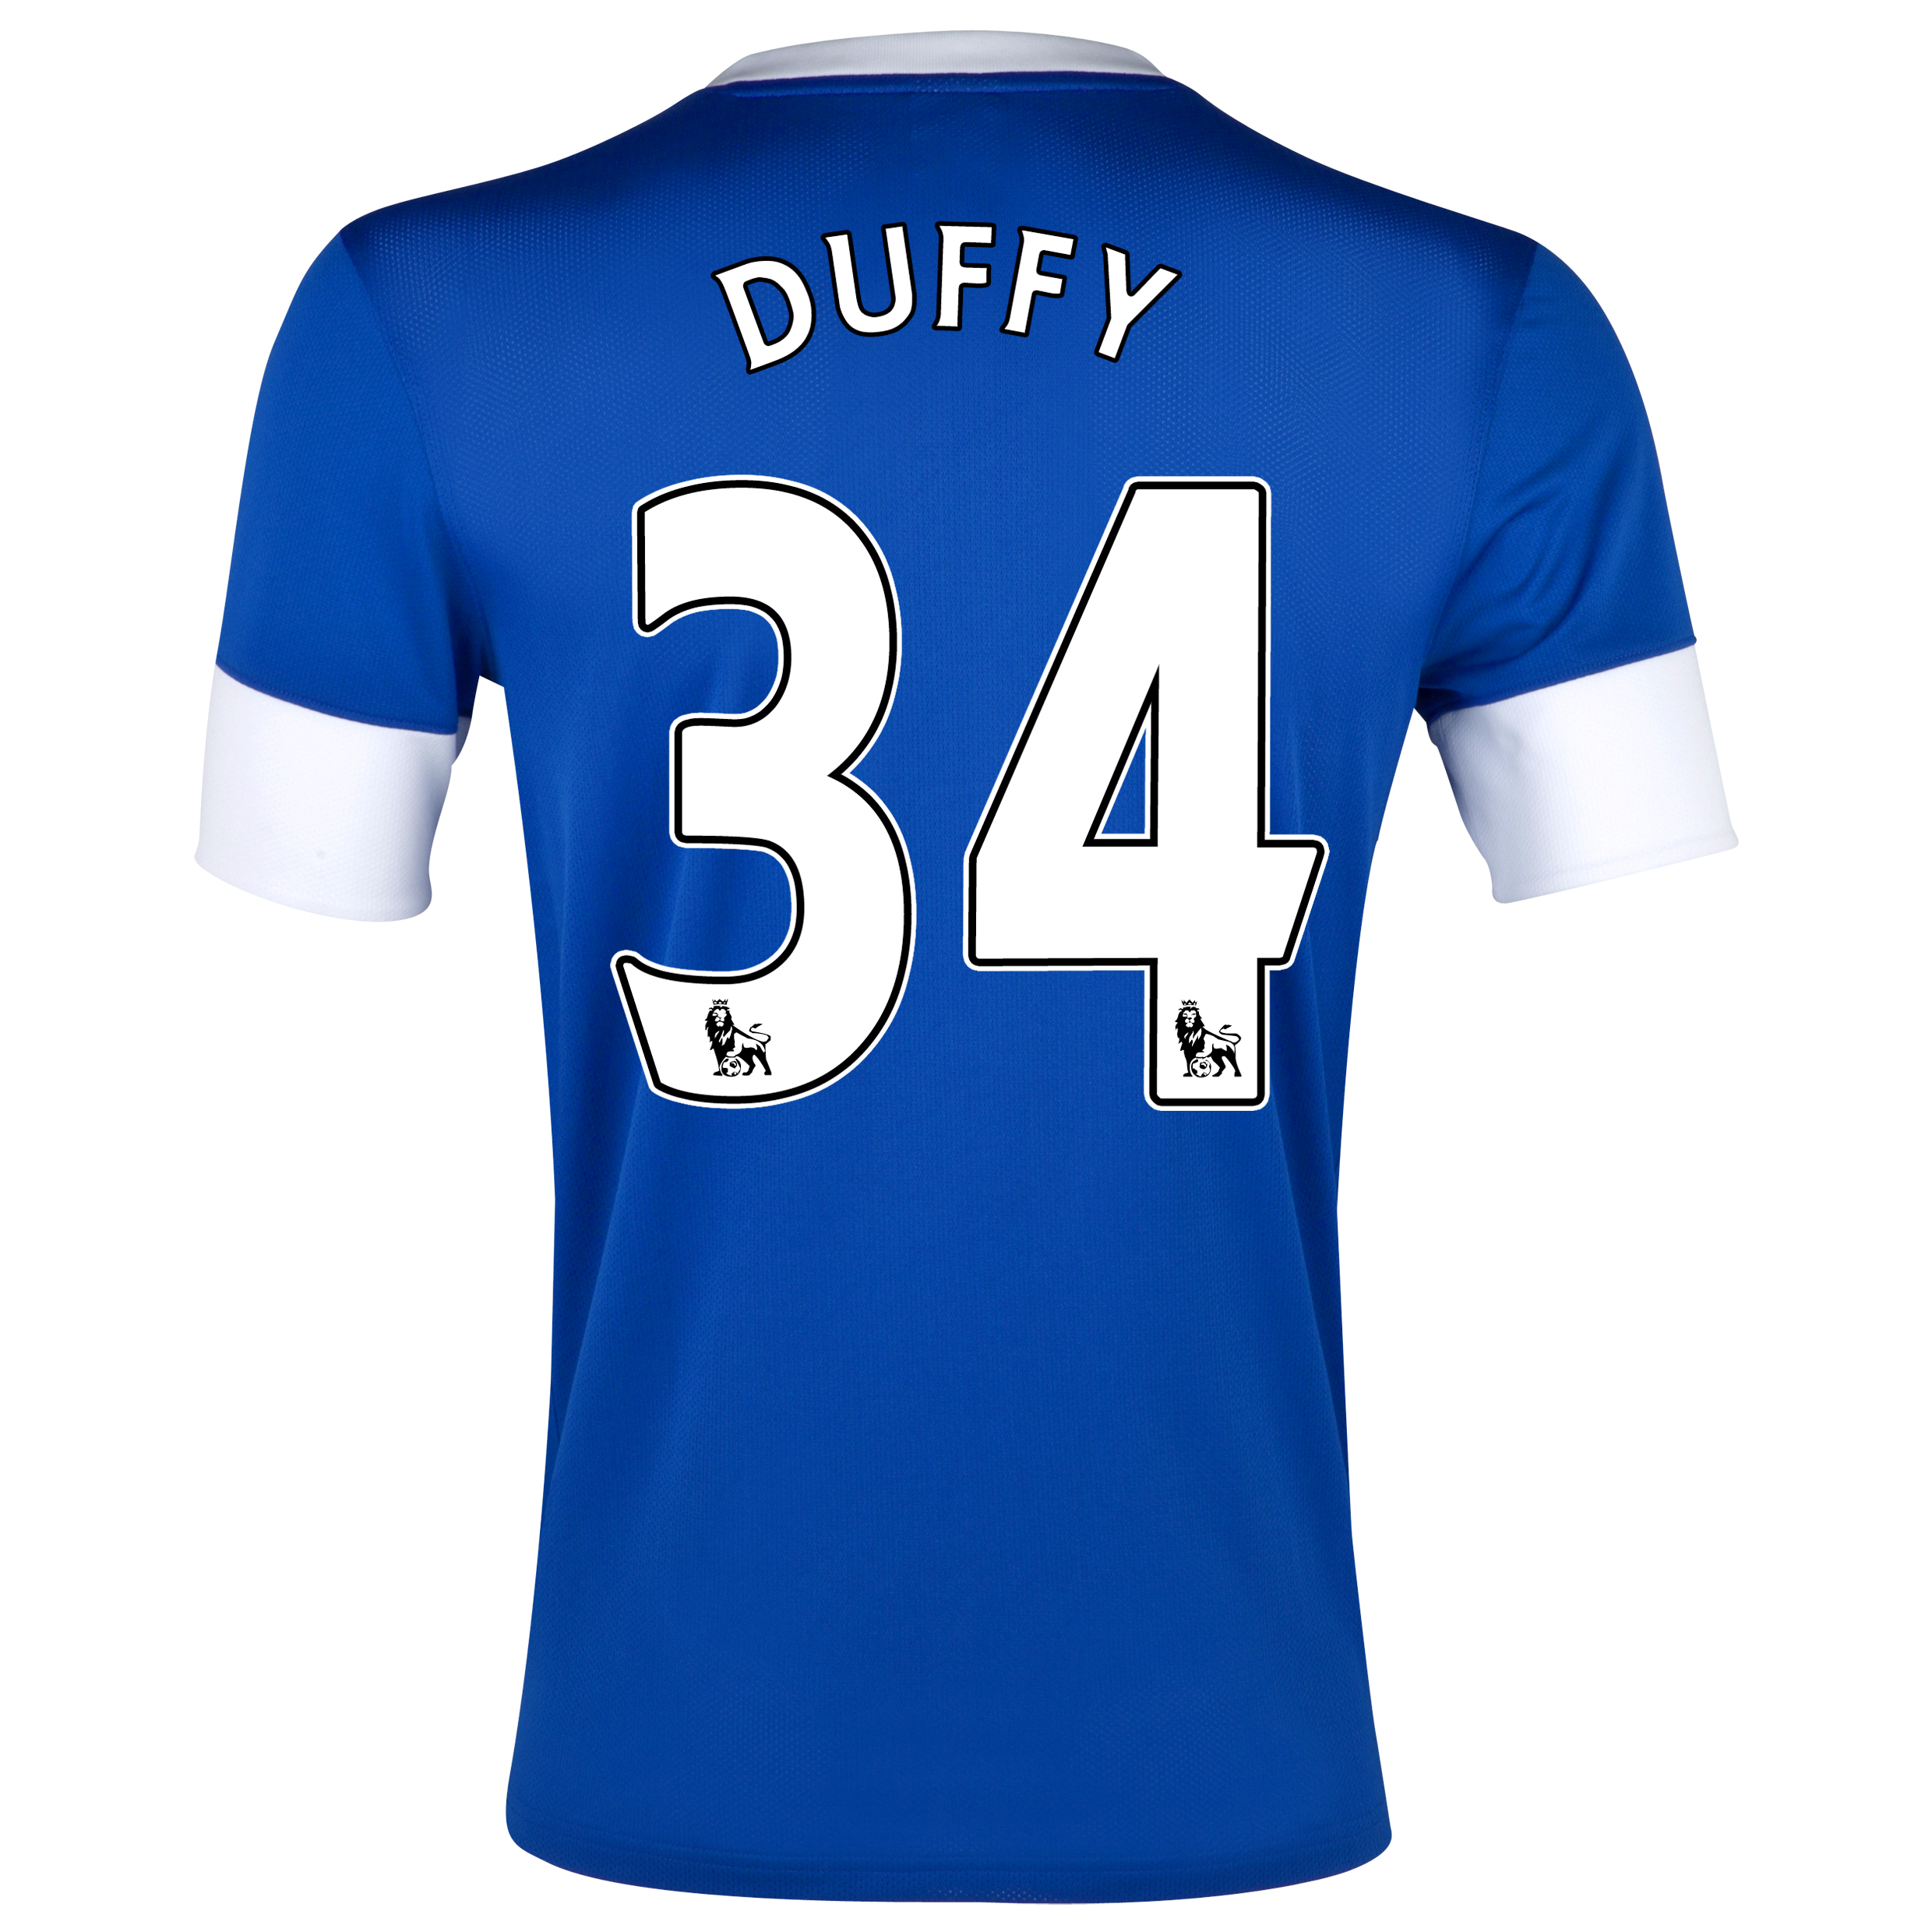 Everton Home Shirt 2012/13 with Duffy 34 printing